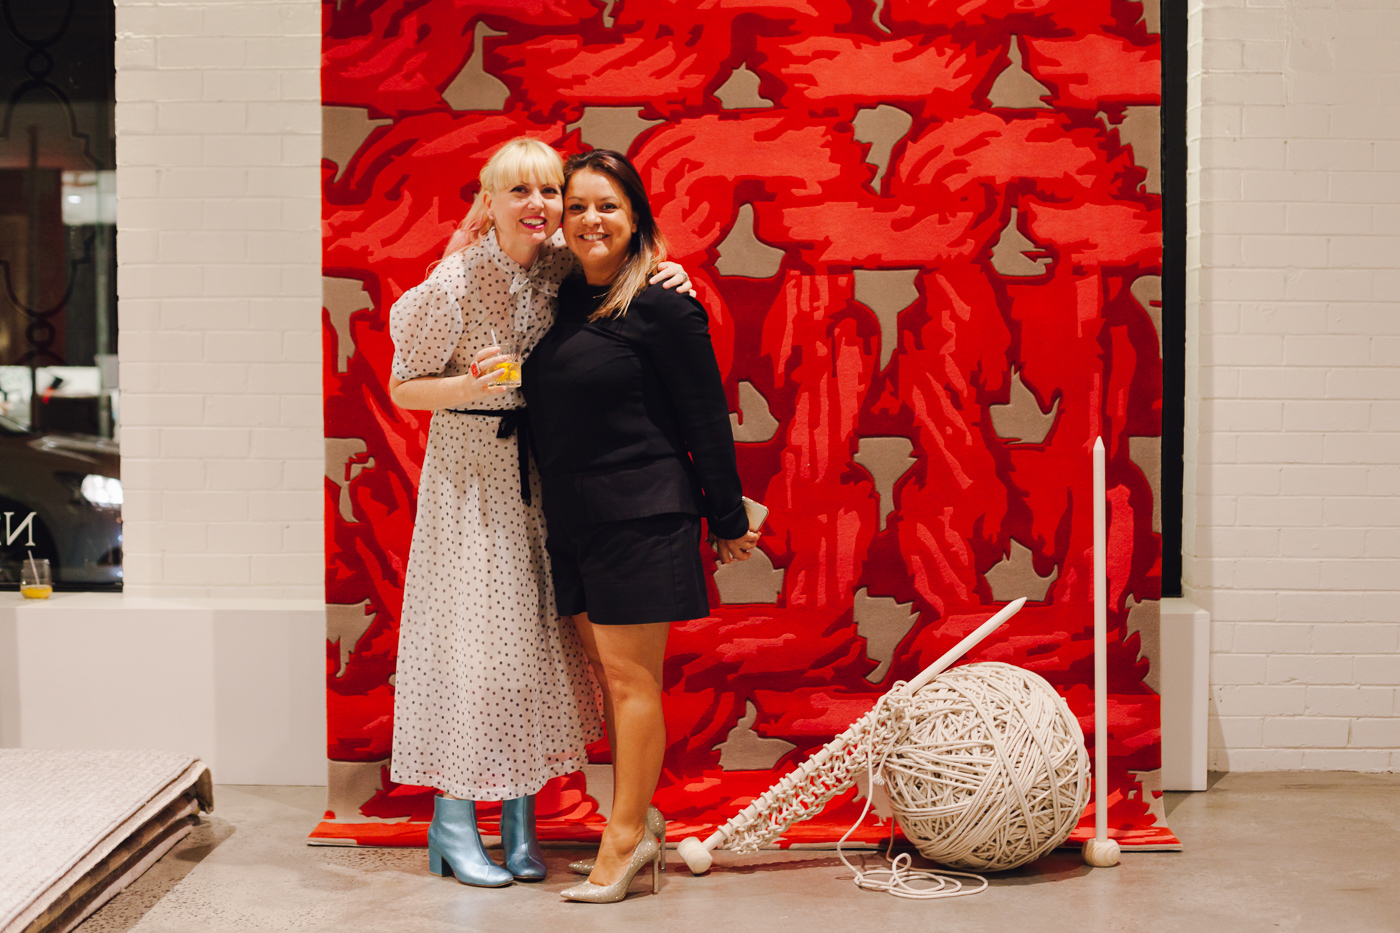 With Monica Del Rosario | NEW AGAIN by Petrina Turner Design for Designer Rugs | The launch event